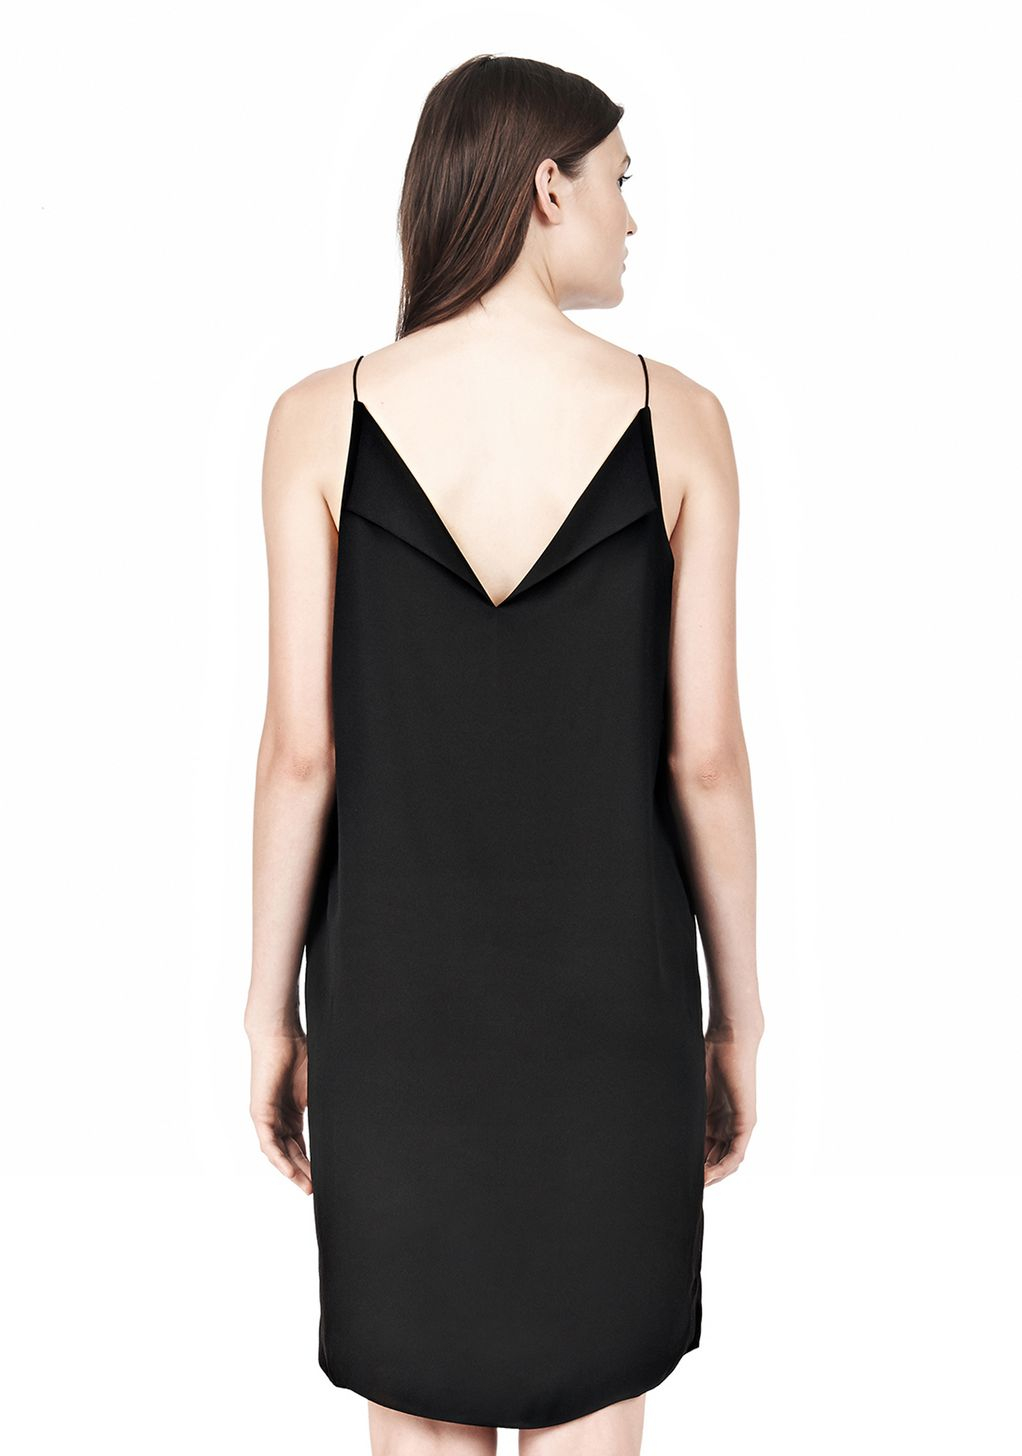 6956e840ffd5e Alexander Wang Silk Square Neck Slip With Satin Back Lapels in Black ...